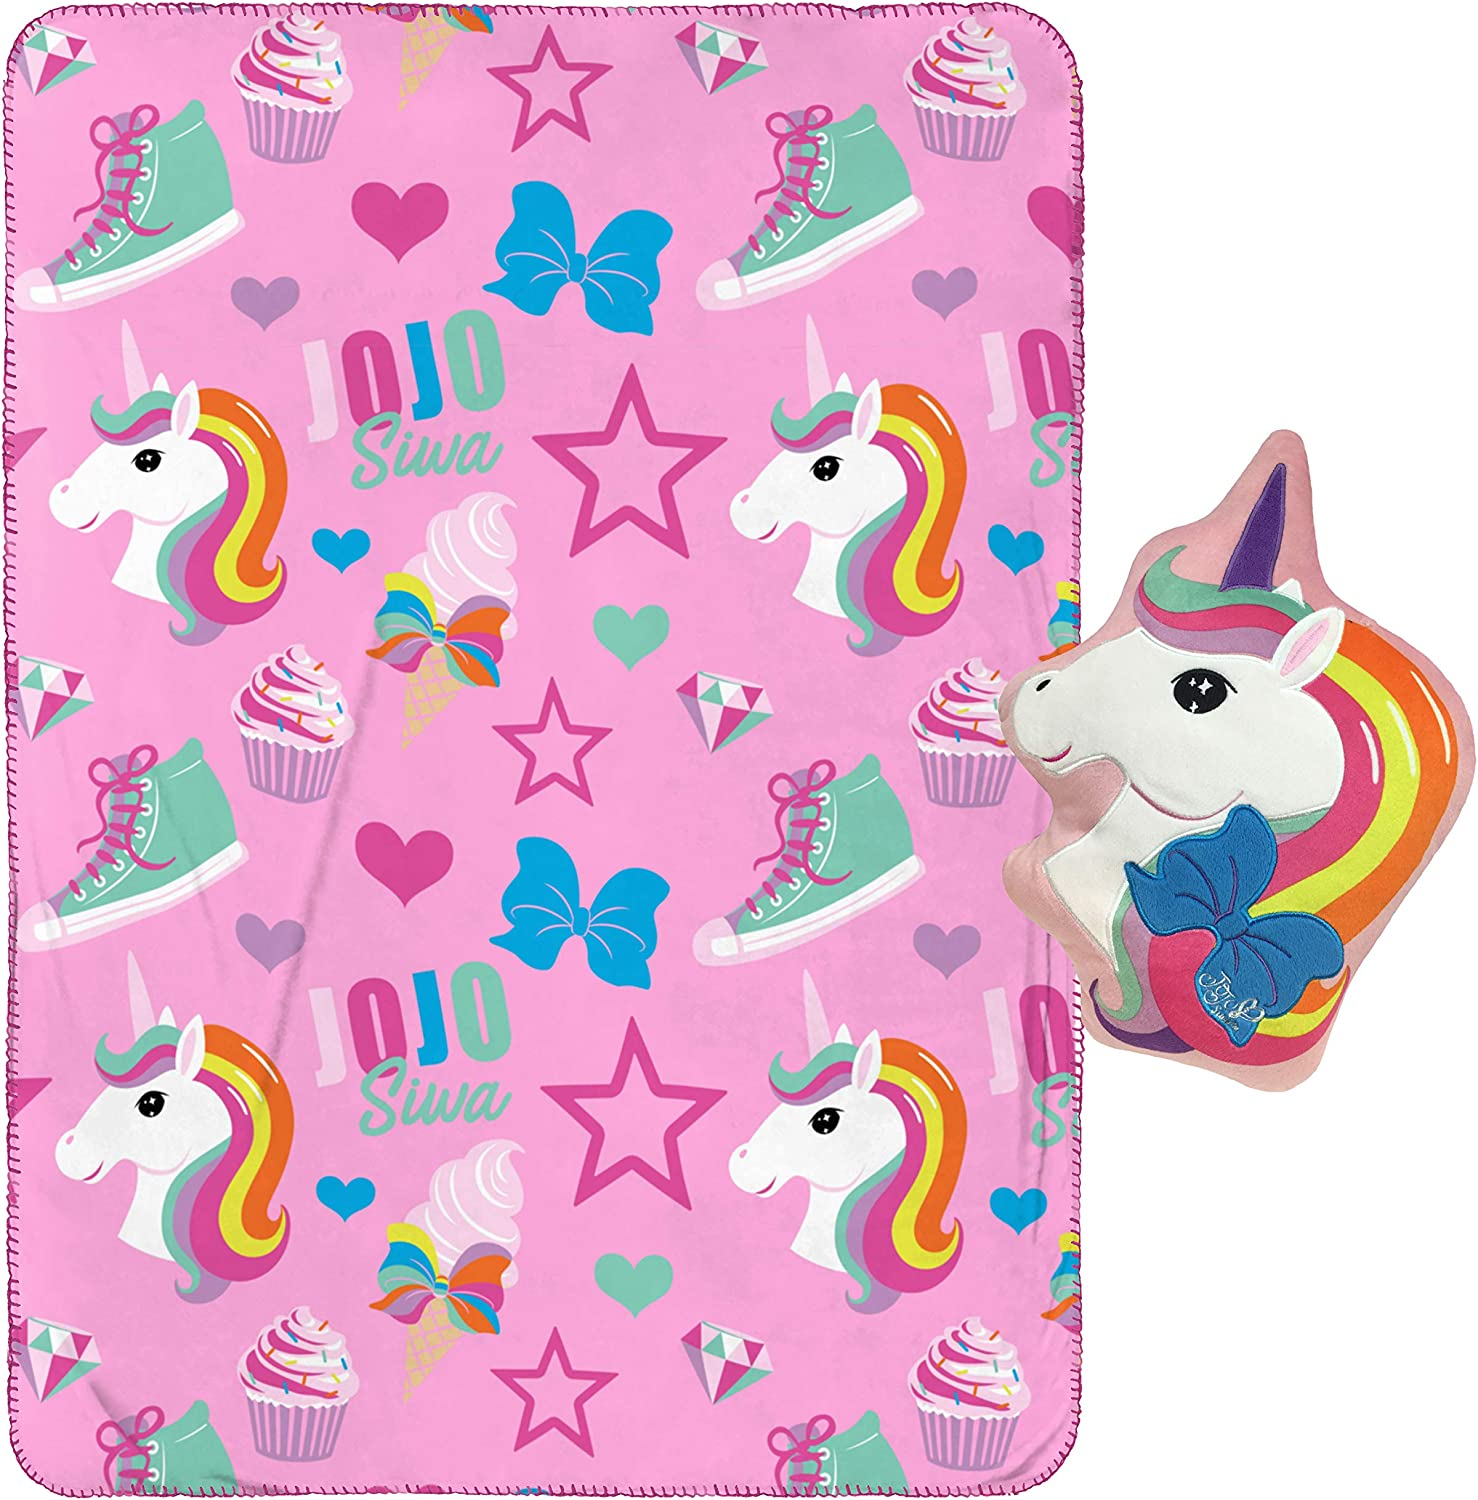 Official Nickelodeon Product Measures 40 x 60 inches Fade Resistant Super Soft Velboa - Kids Bedding Jay Franco Nickelodeon JoJo Siwa Follow Your Dreams Weighted Blanket 5 lbs